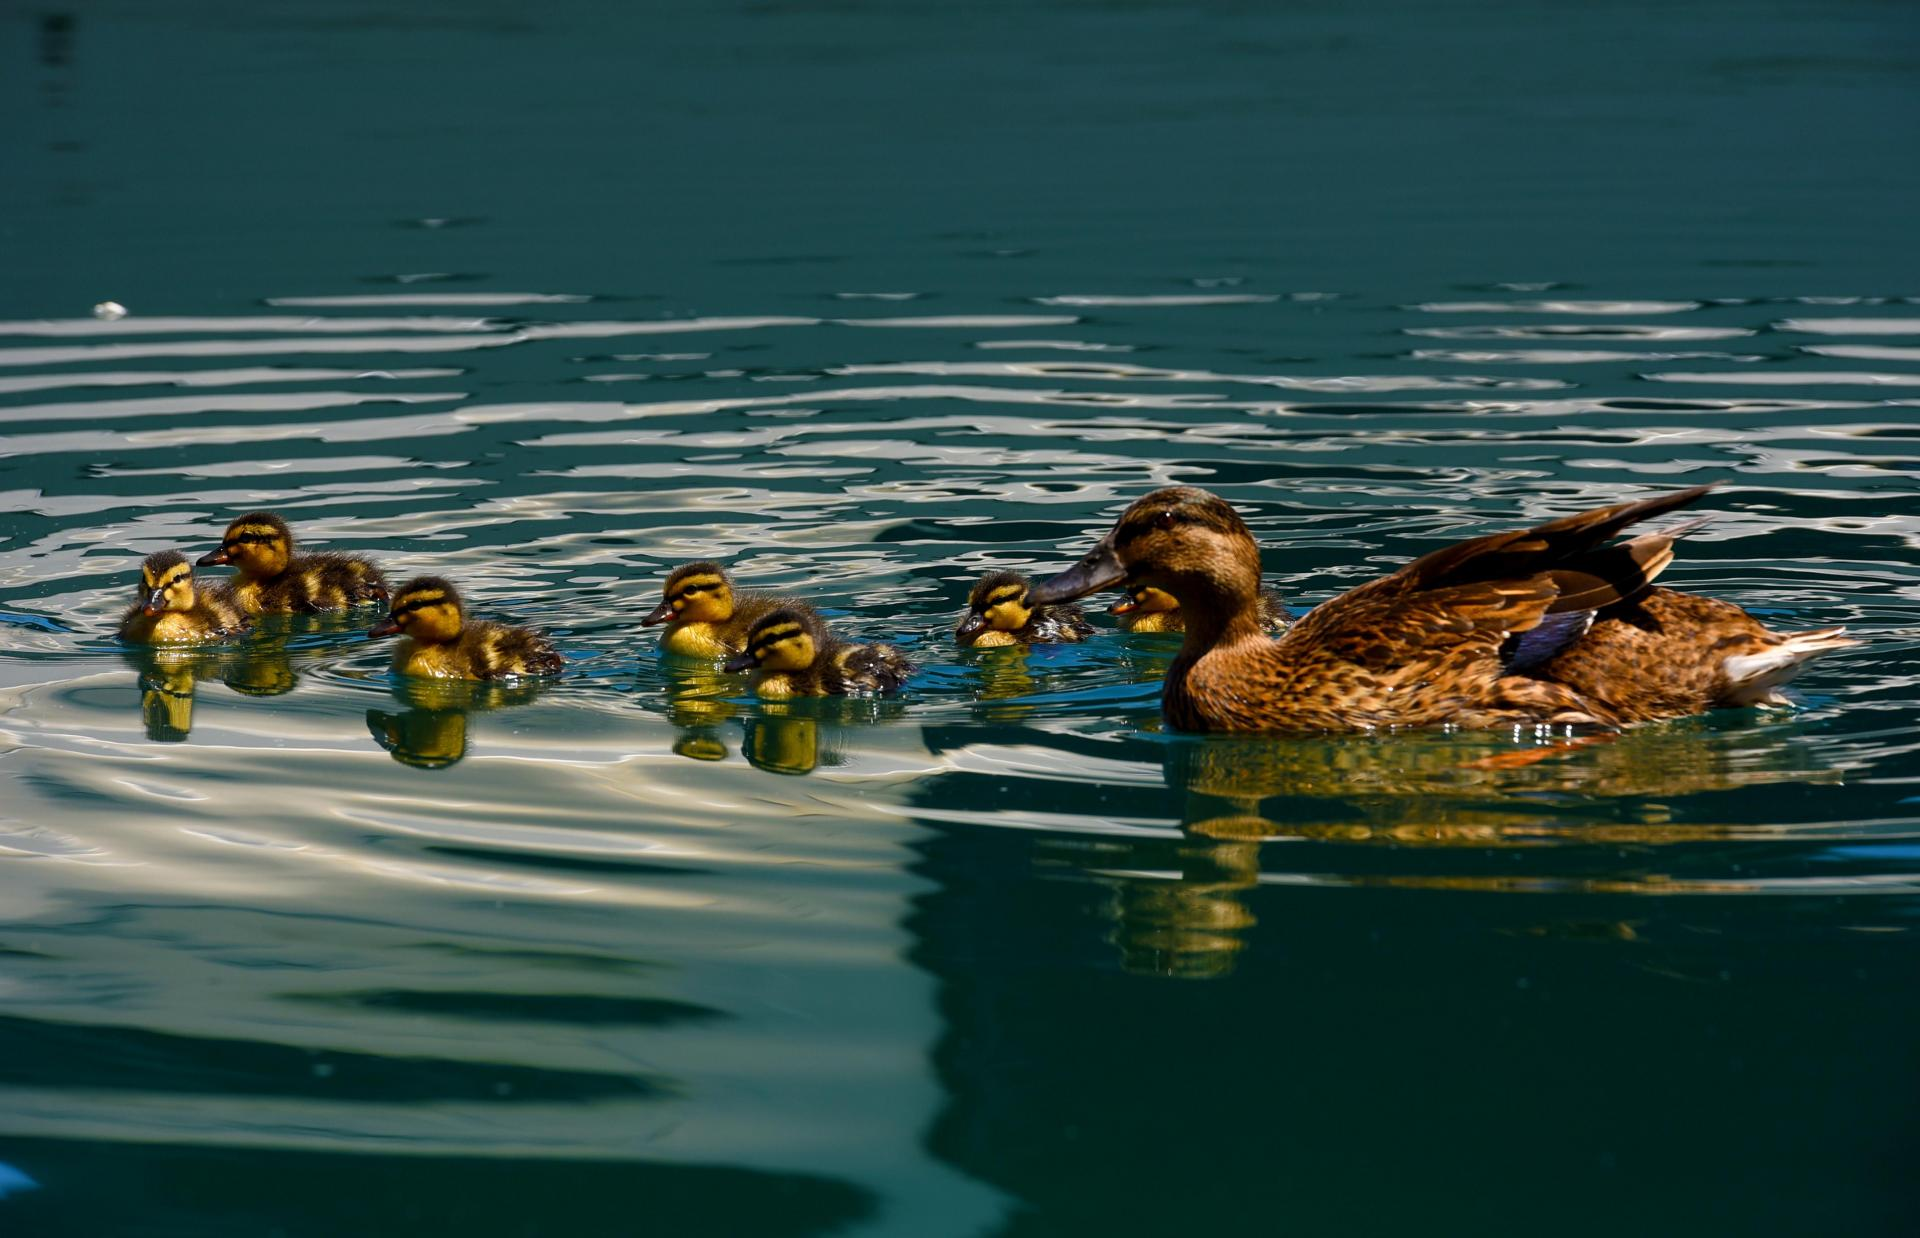 Ducks in Salina. Wildlife is thriving as pollution has declined. Photo: Chris Sant Fournier